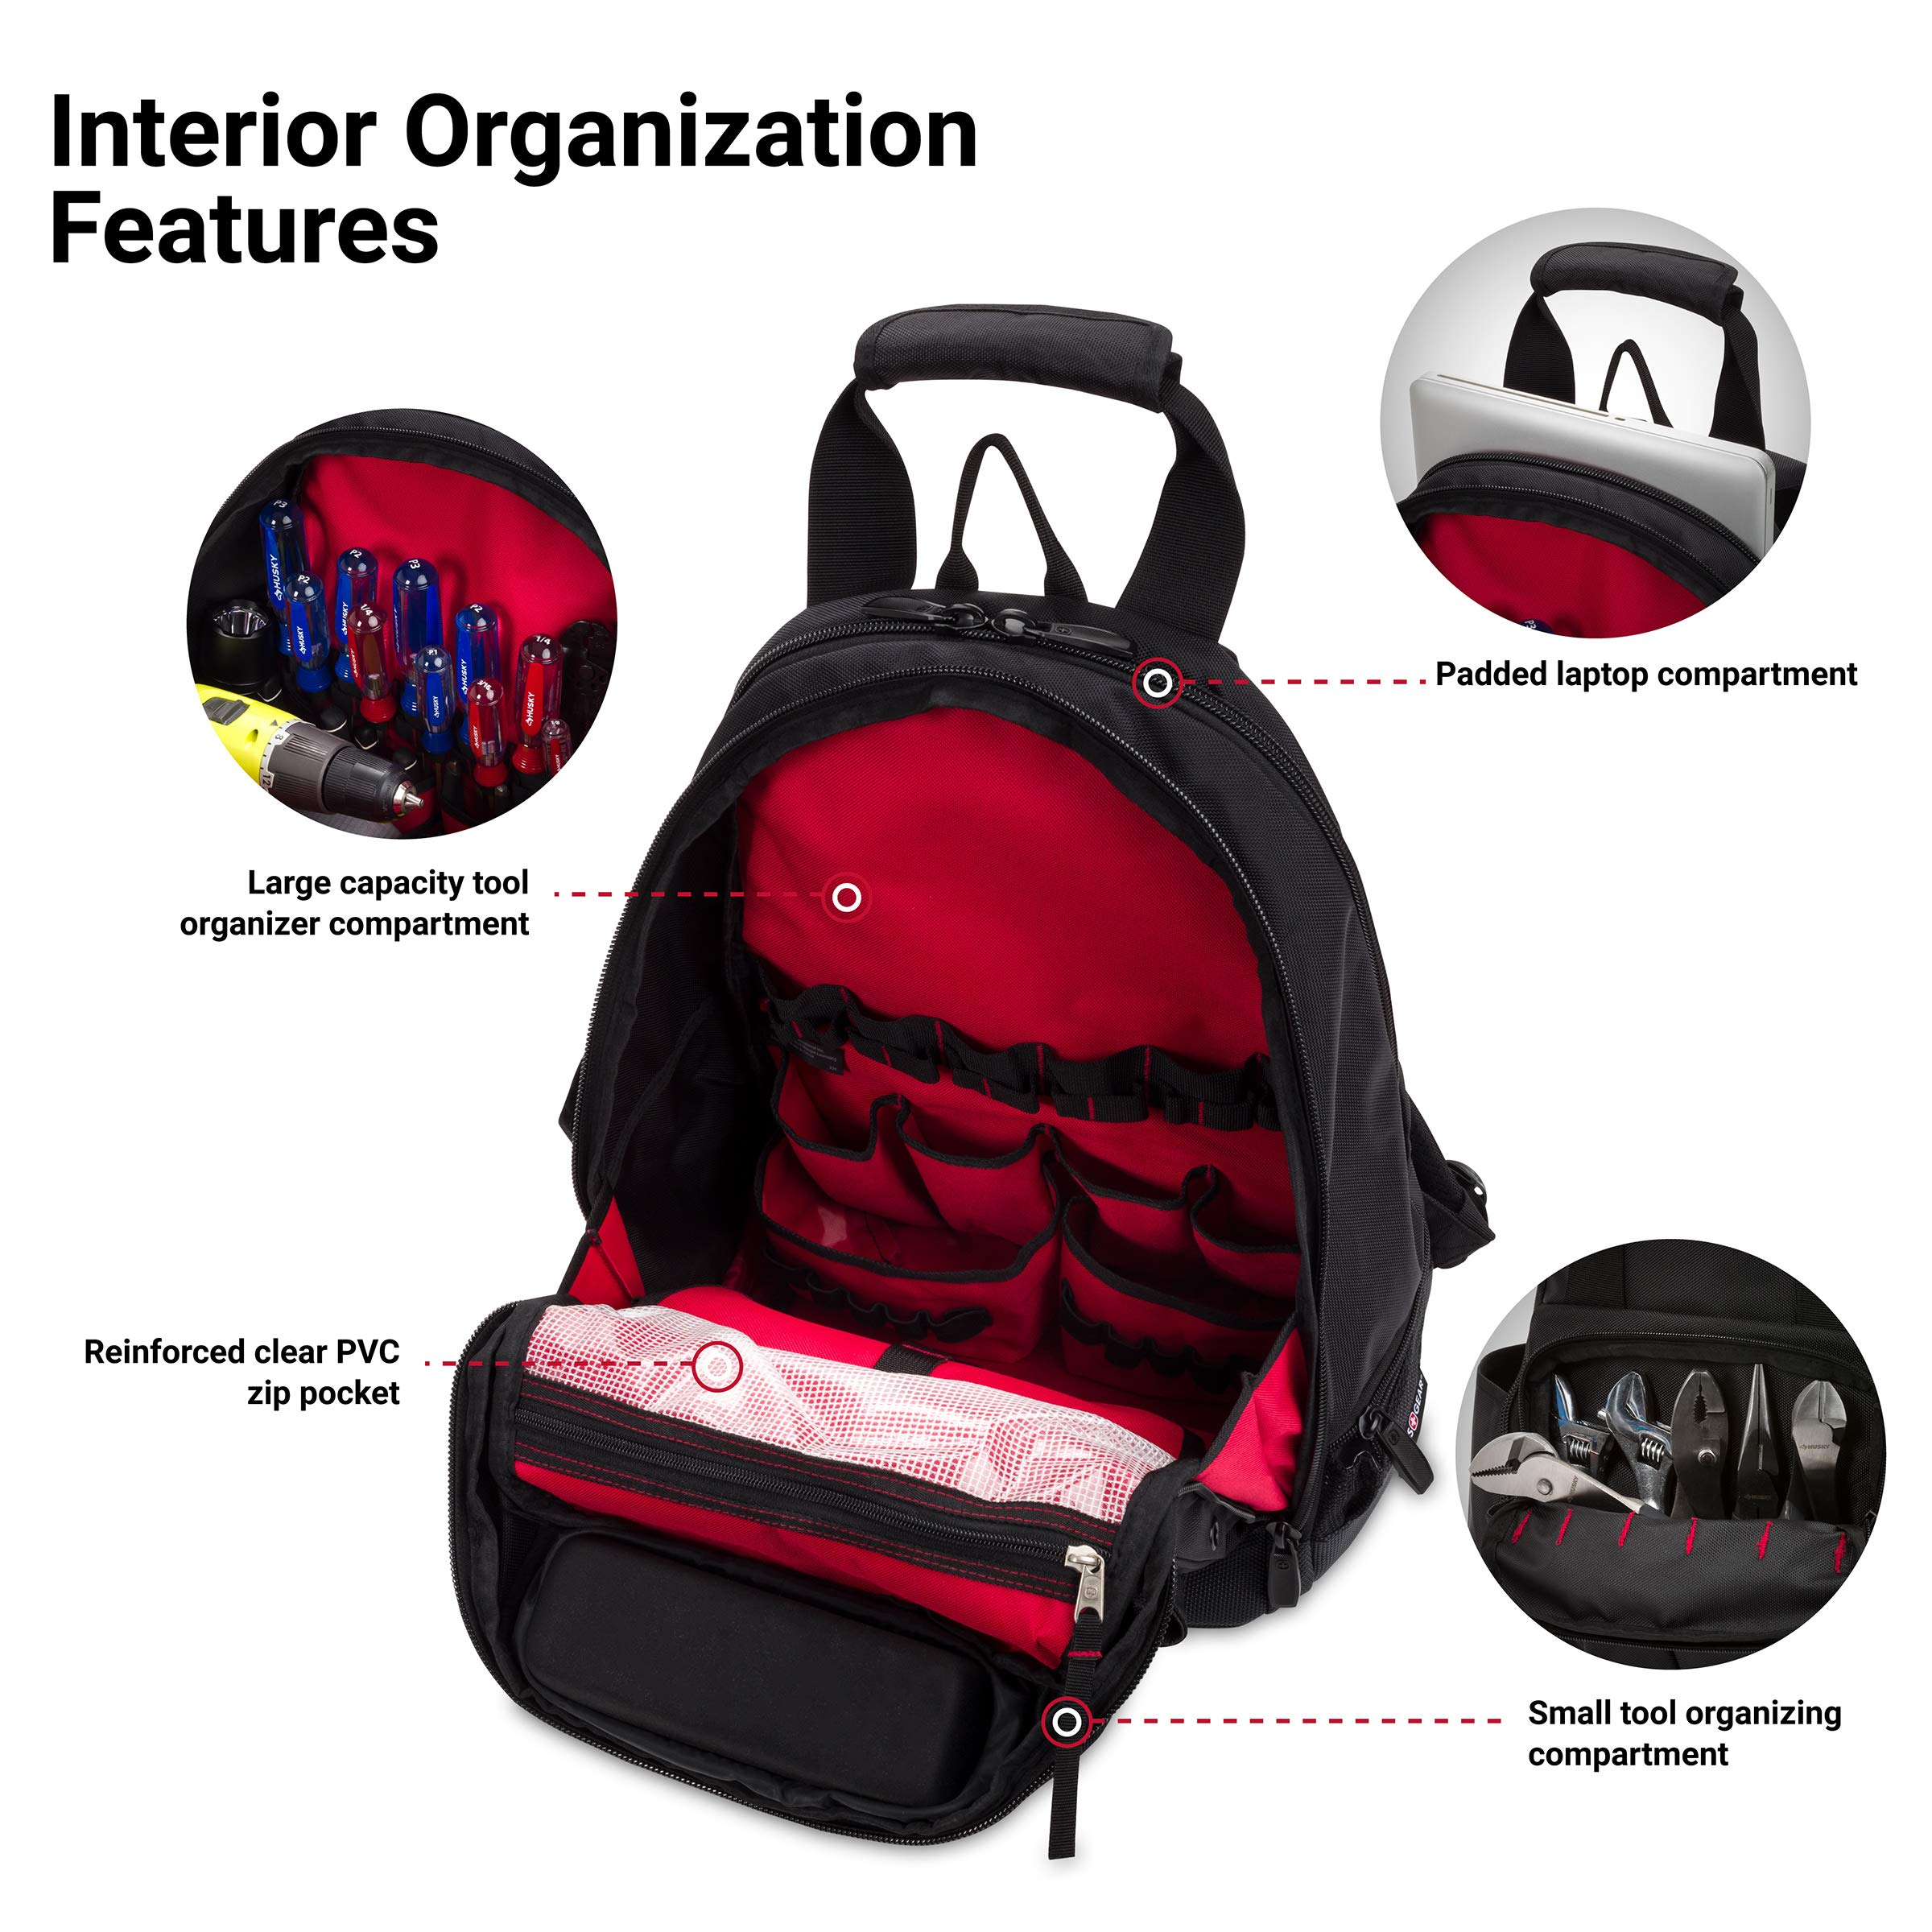 SWISSGEAR 2767 Large Durable Work Pack Tool Backpack With Padded Laptop Compartment | Tool Storage, Part Organization, Wet/Dry Pocket - Black by SwissGear (Image #4)